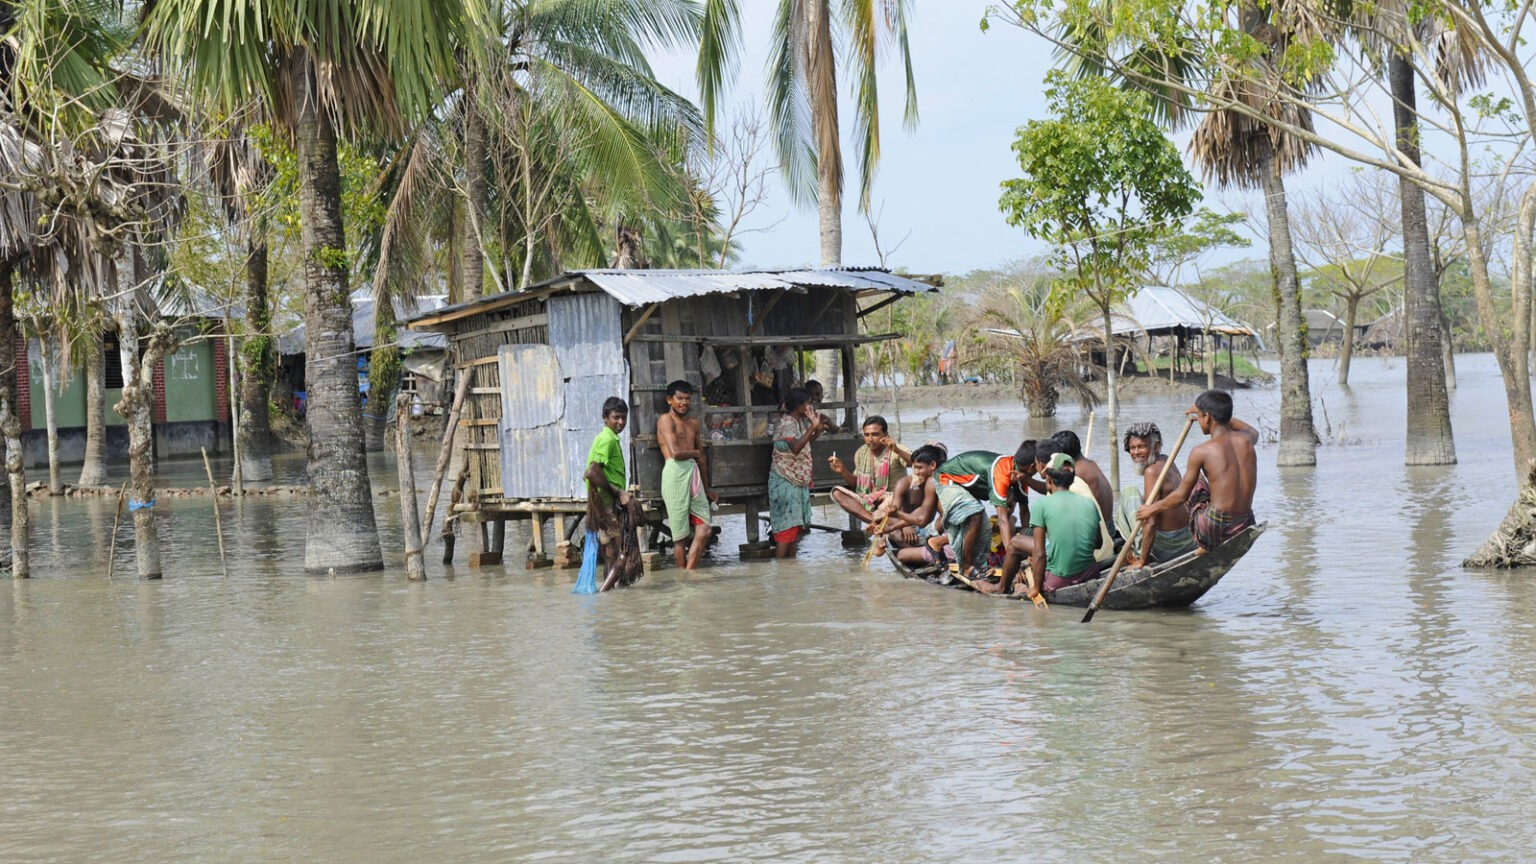 'Will action to slow climate change make the world poorer?'